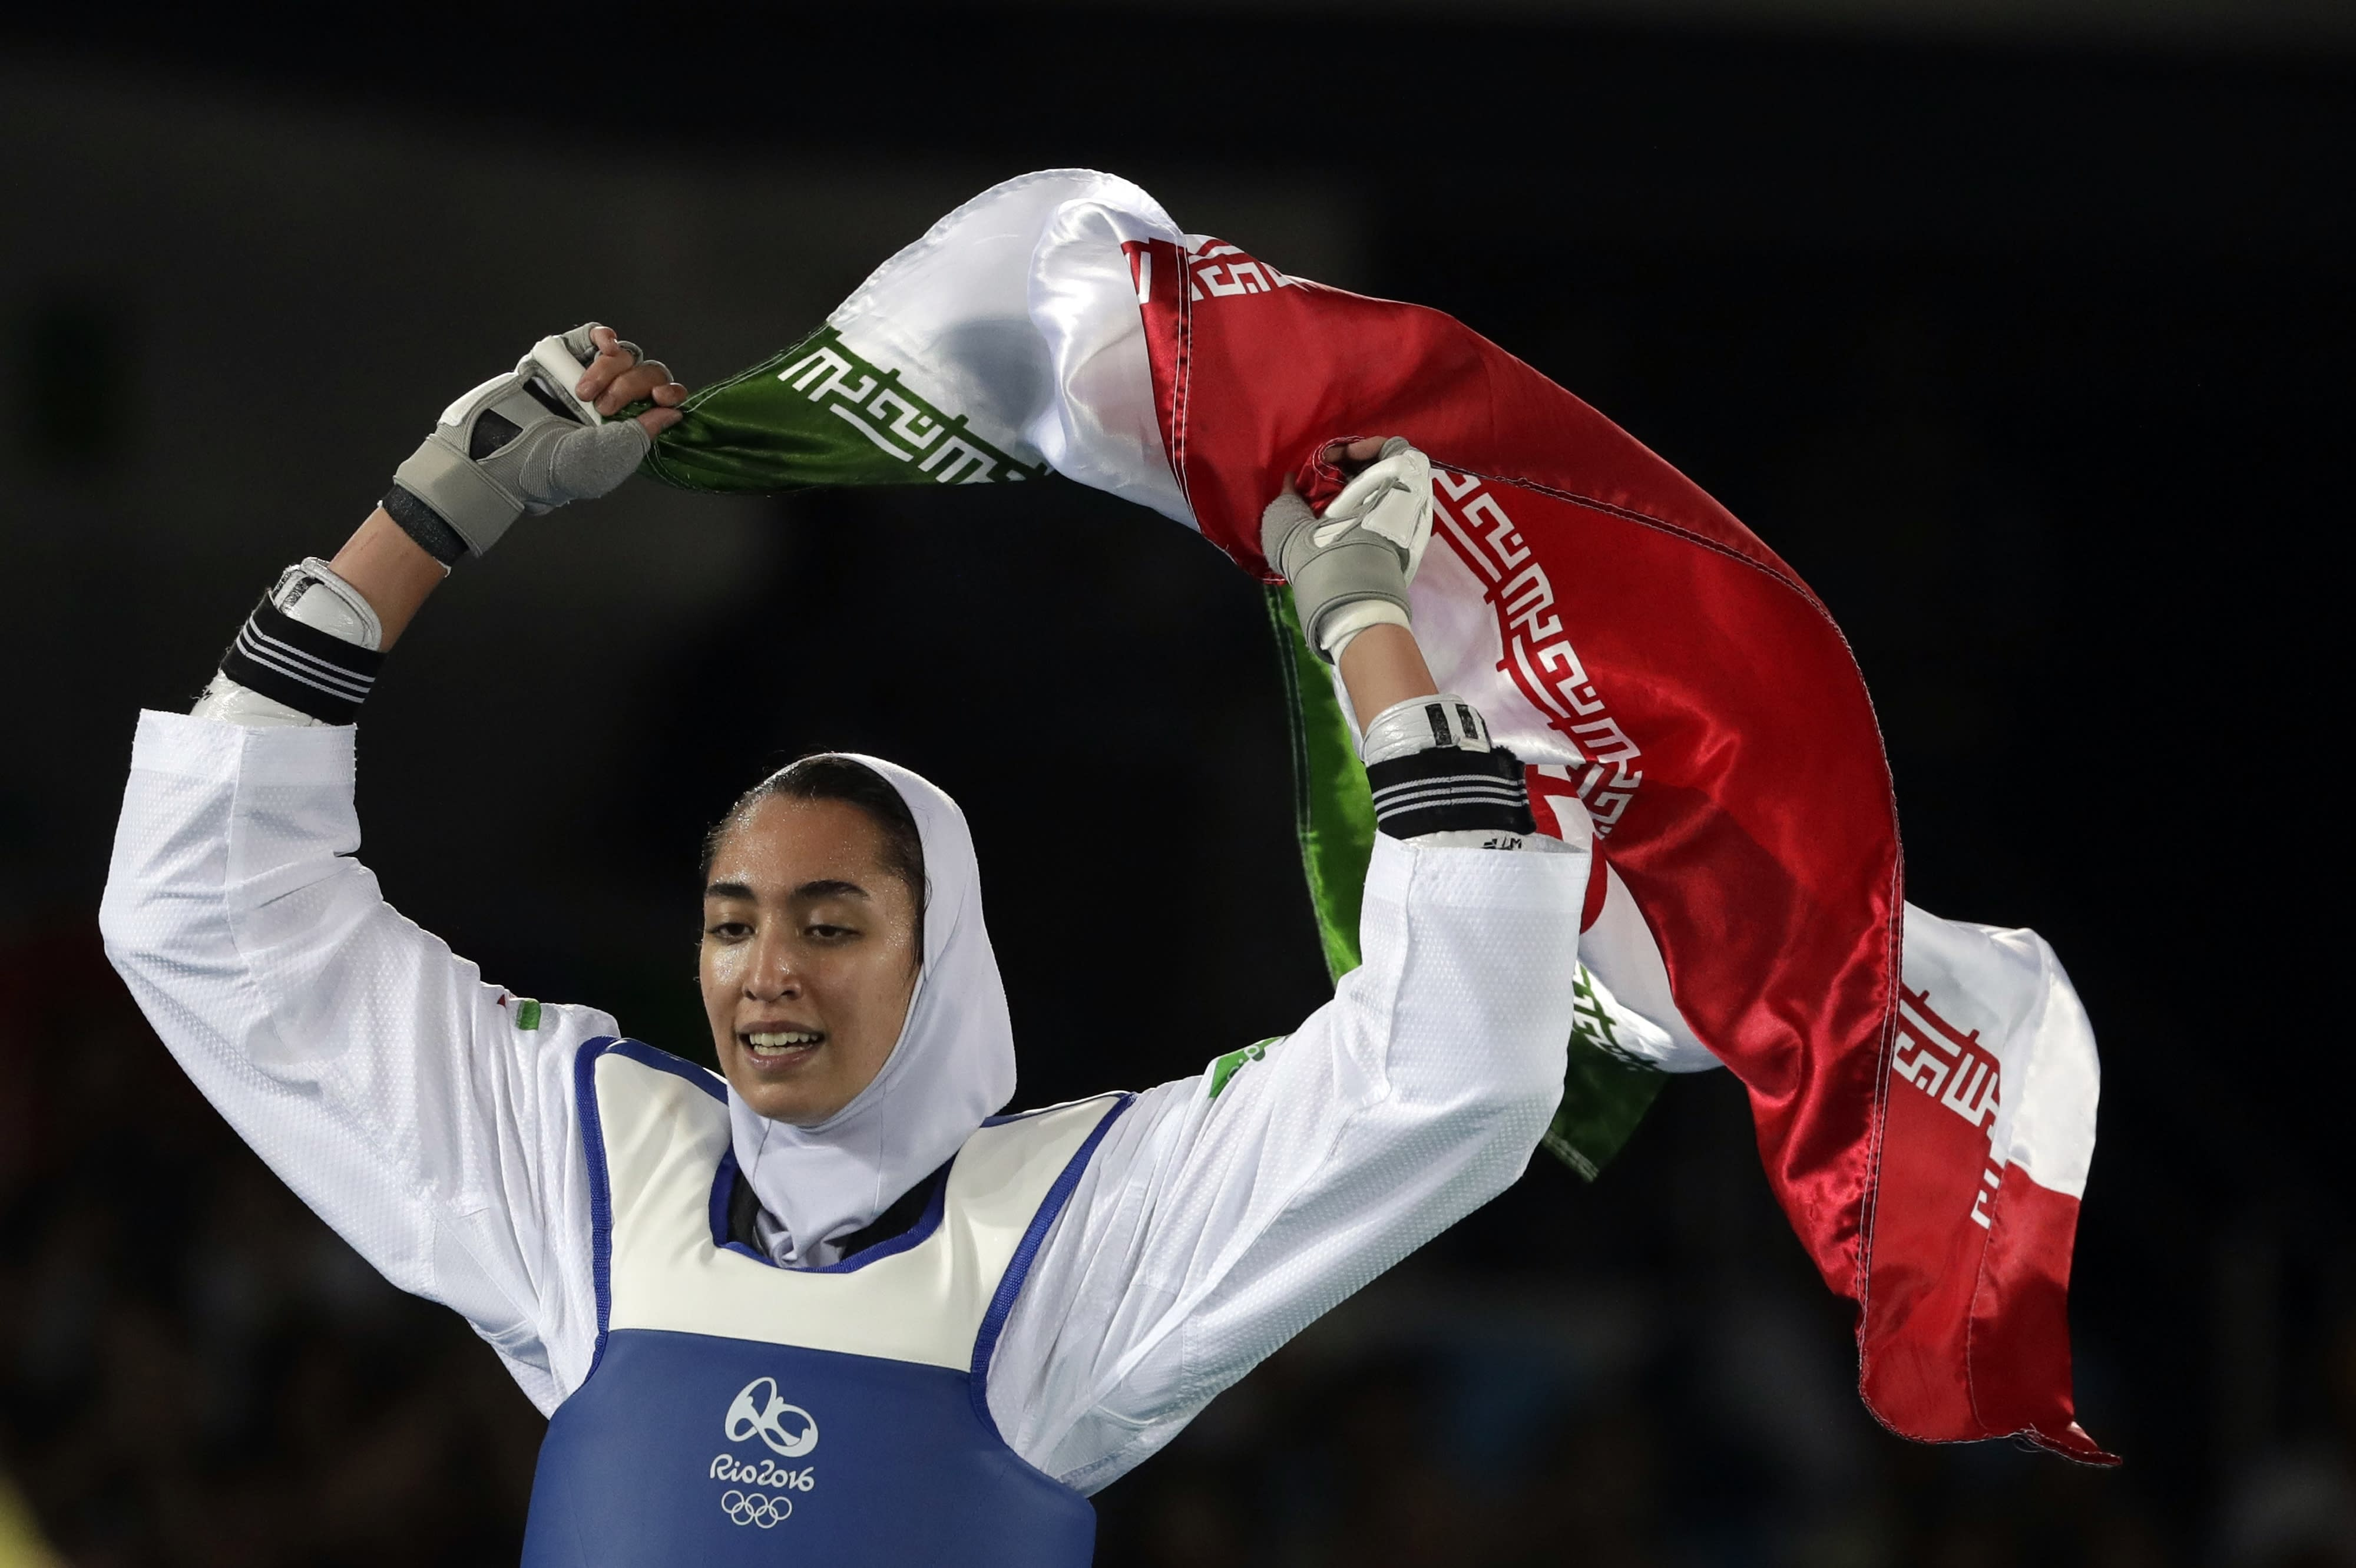 """FILE - In this Aug. 18, 2016 file photo, Kimia Alizadeh Zenoorin of Iran celebrates after winning the bronze medal in a women's Taekwondo 57-kg competition at the 2016 Summer Olympics in Rio de Janeiro, Brazil. Zenoorin, Iran's only female Olympic medalist, said she defected from the Islamic Republic in a blistering online letter that describes herself as """"one of the millions of oppressed women in Iran."""" (AP Photo/Andrew Medichini, File)"""